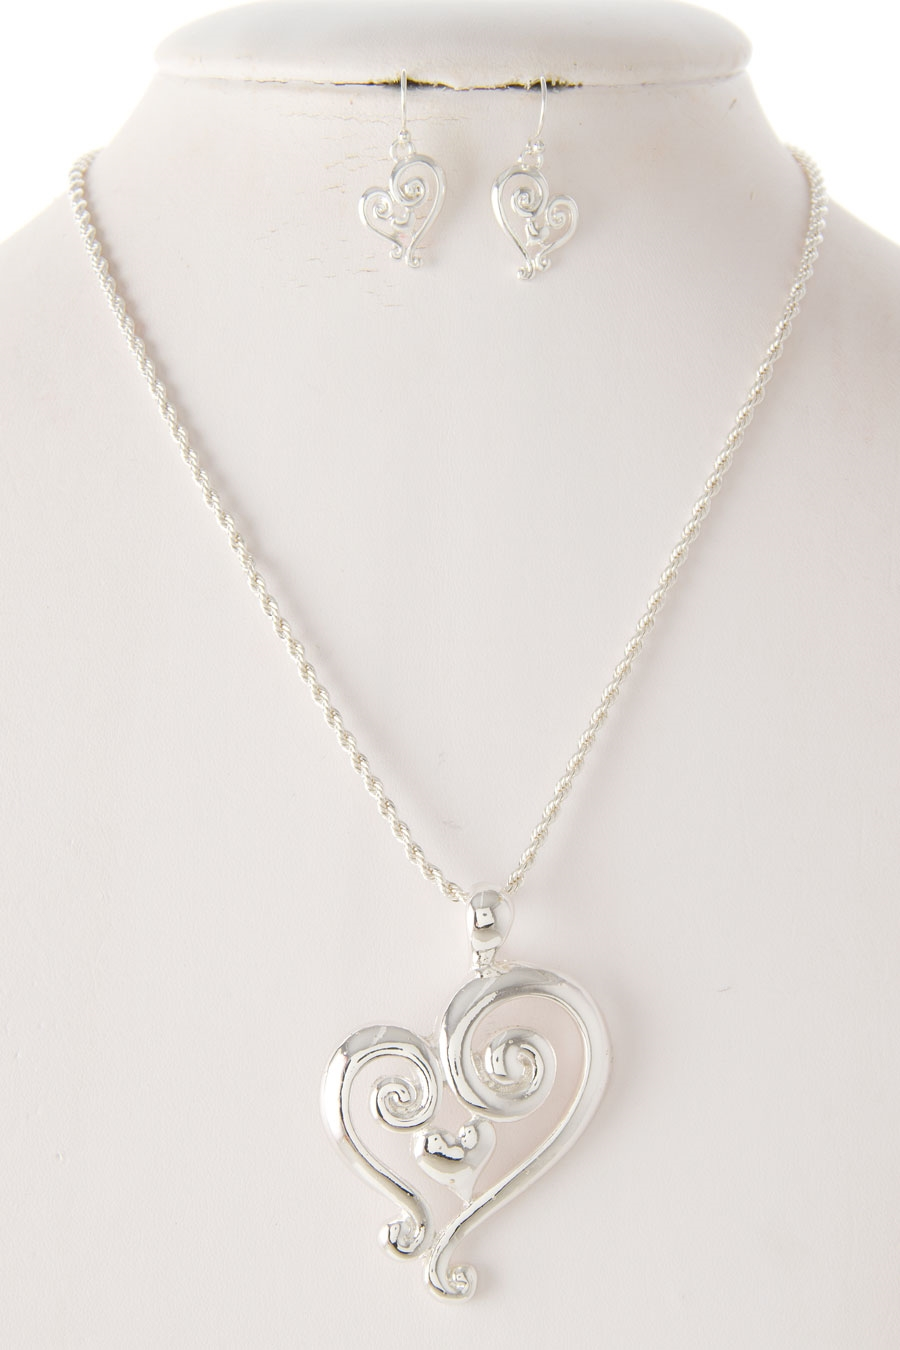 SWIRL HEART PENDANT NECKLACE - orangeshine.com